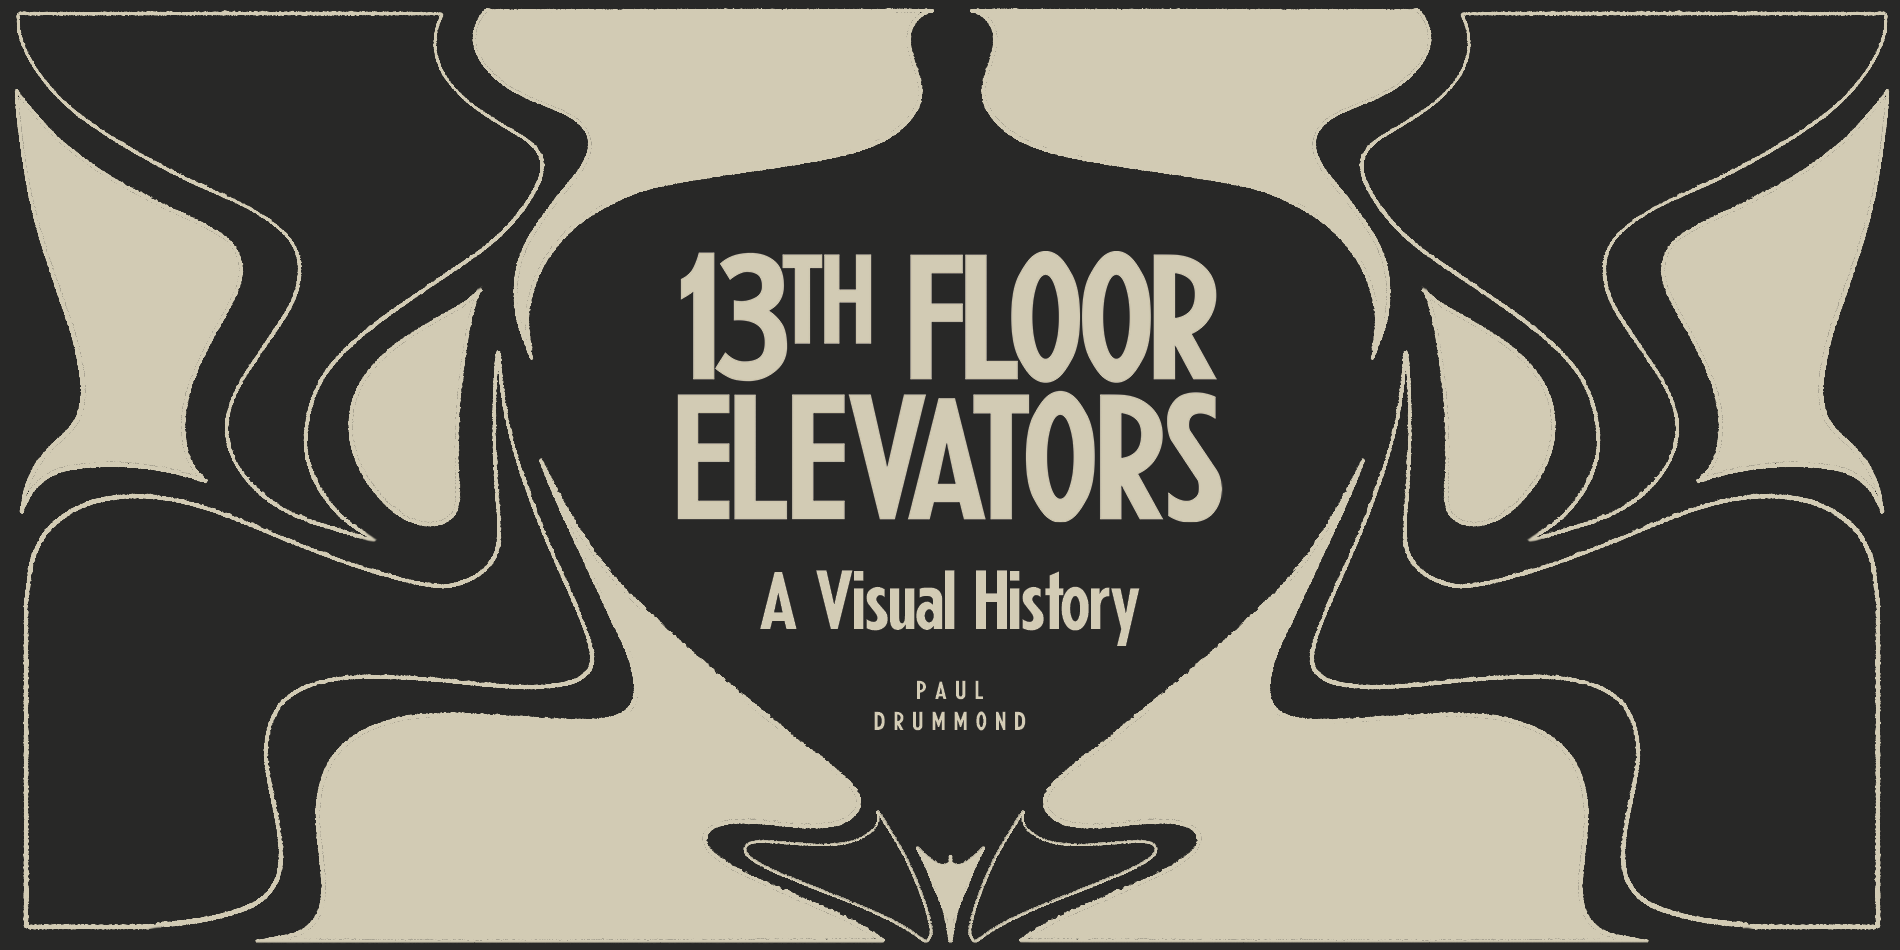 Paul Drummond 13th Floor Elevators A Visual History Book Site Banner